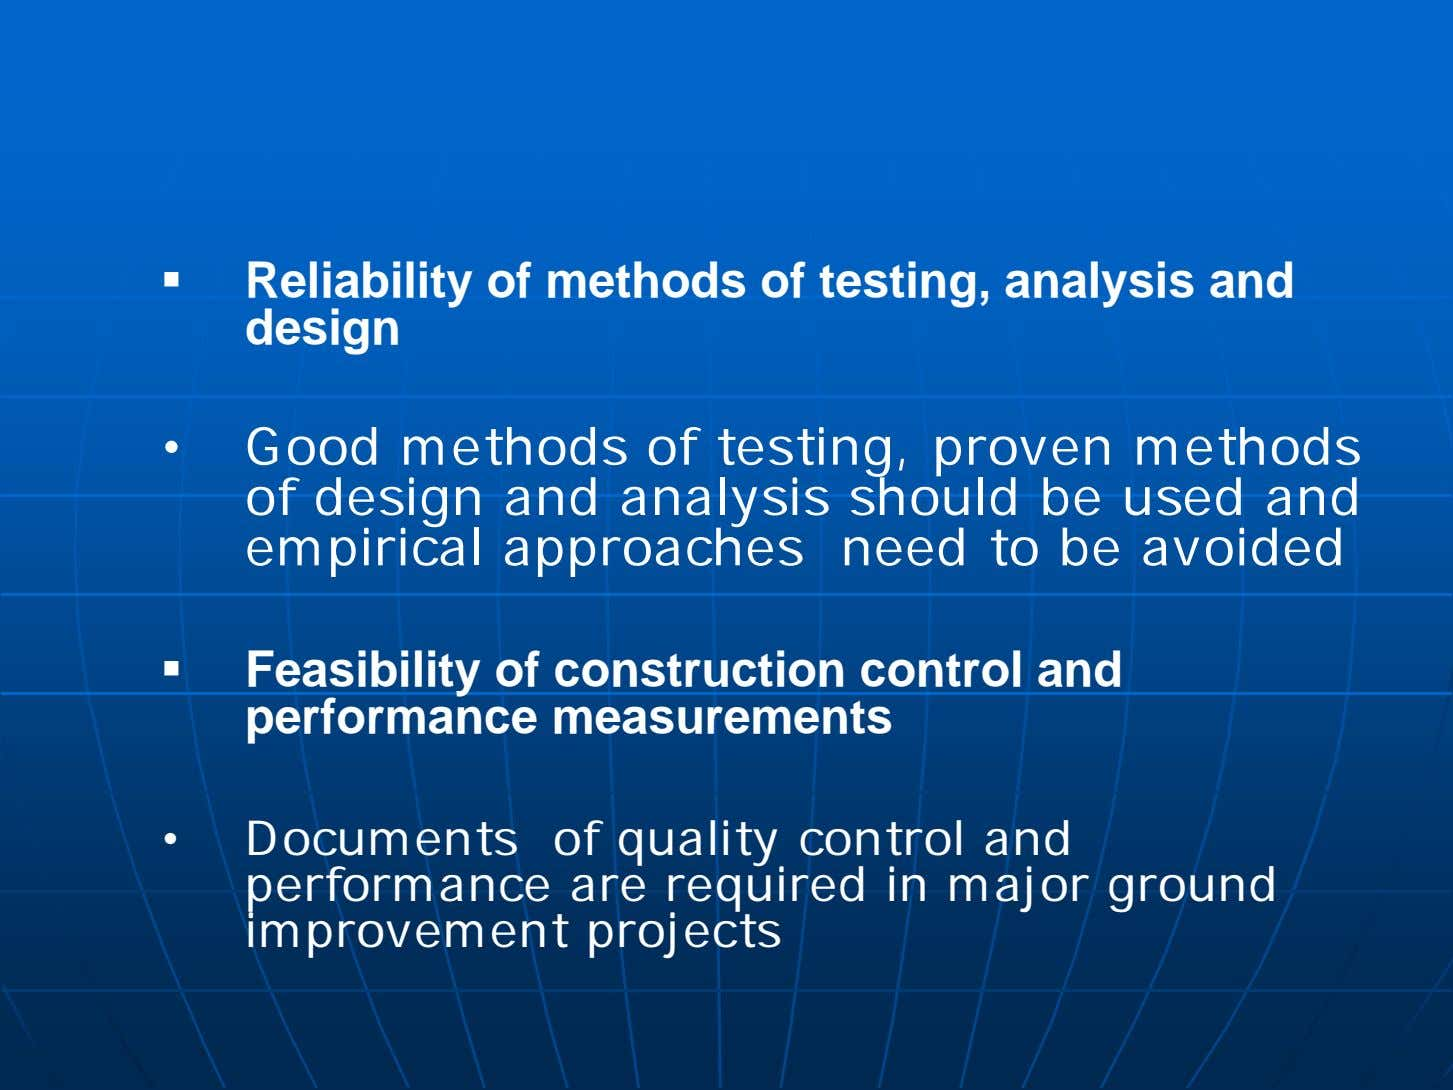  Reliability of methods of testing, analysis and design • Good methods of testing, proven